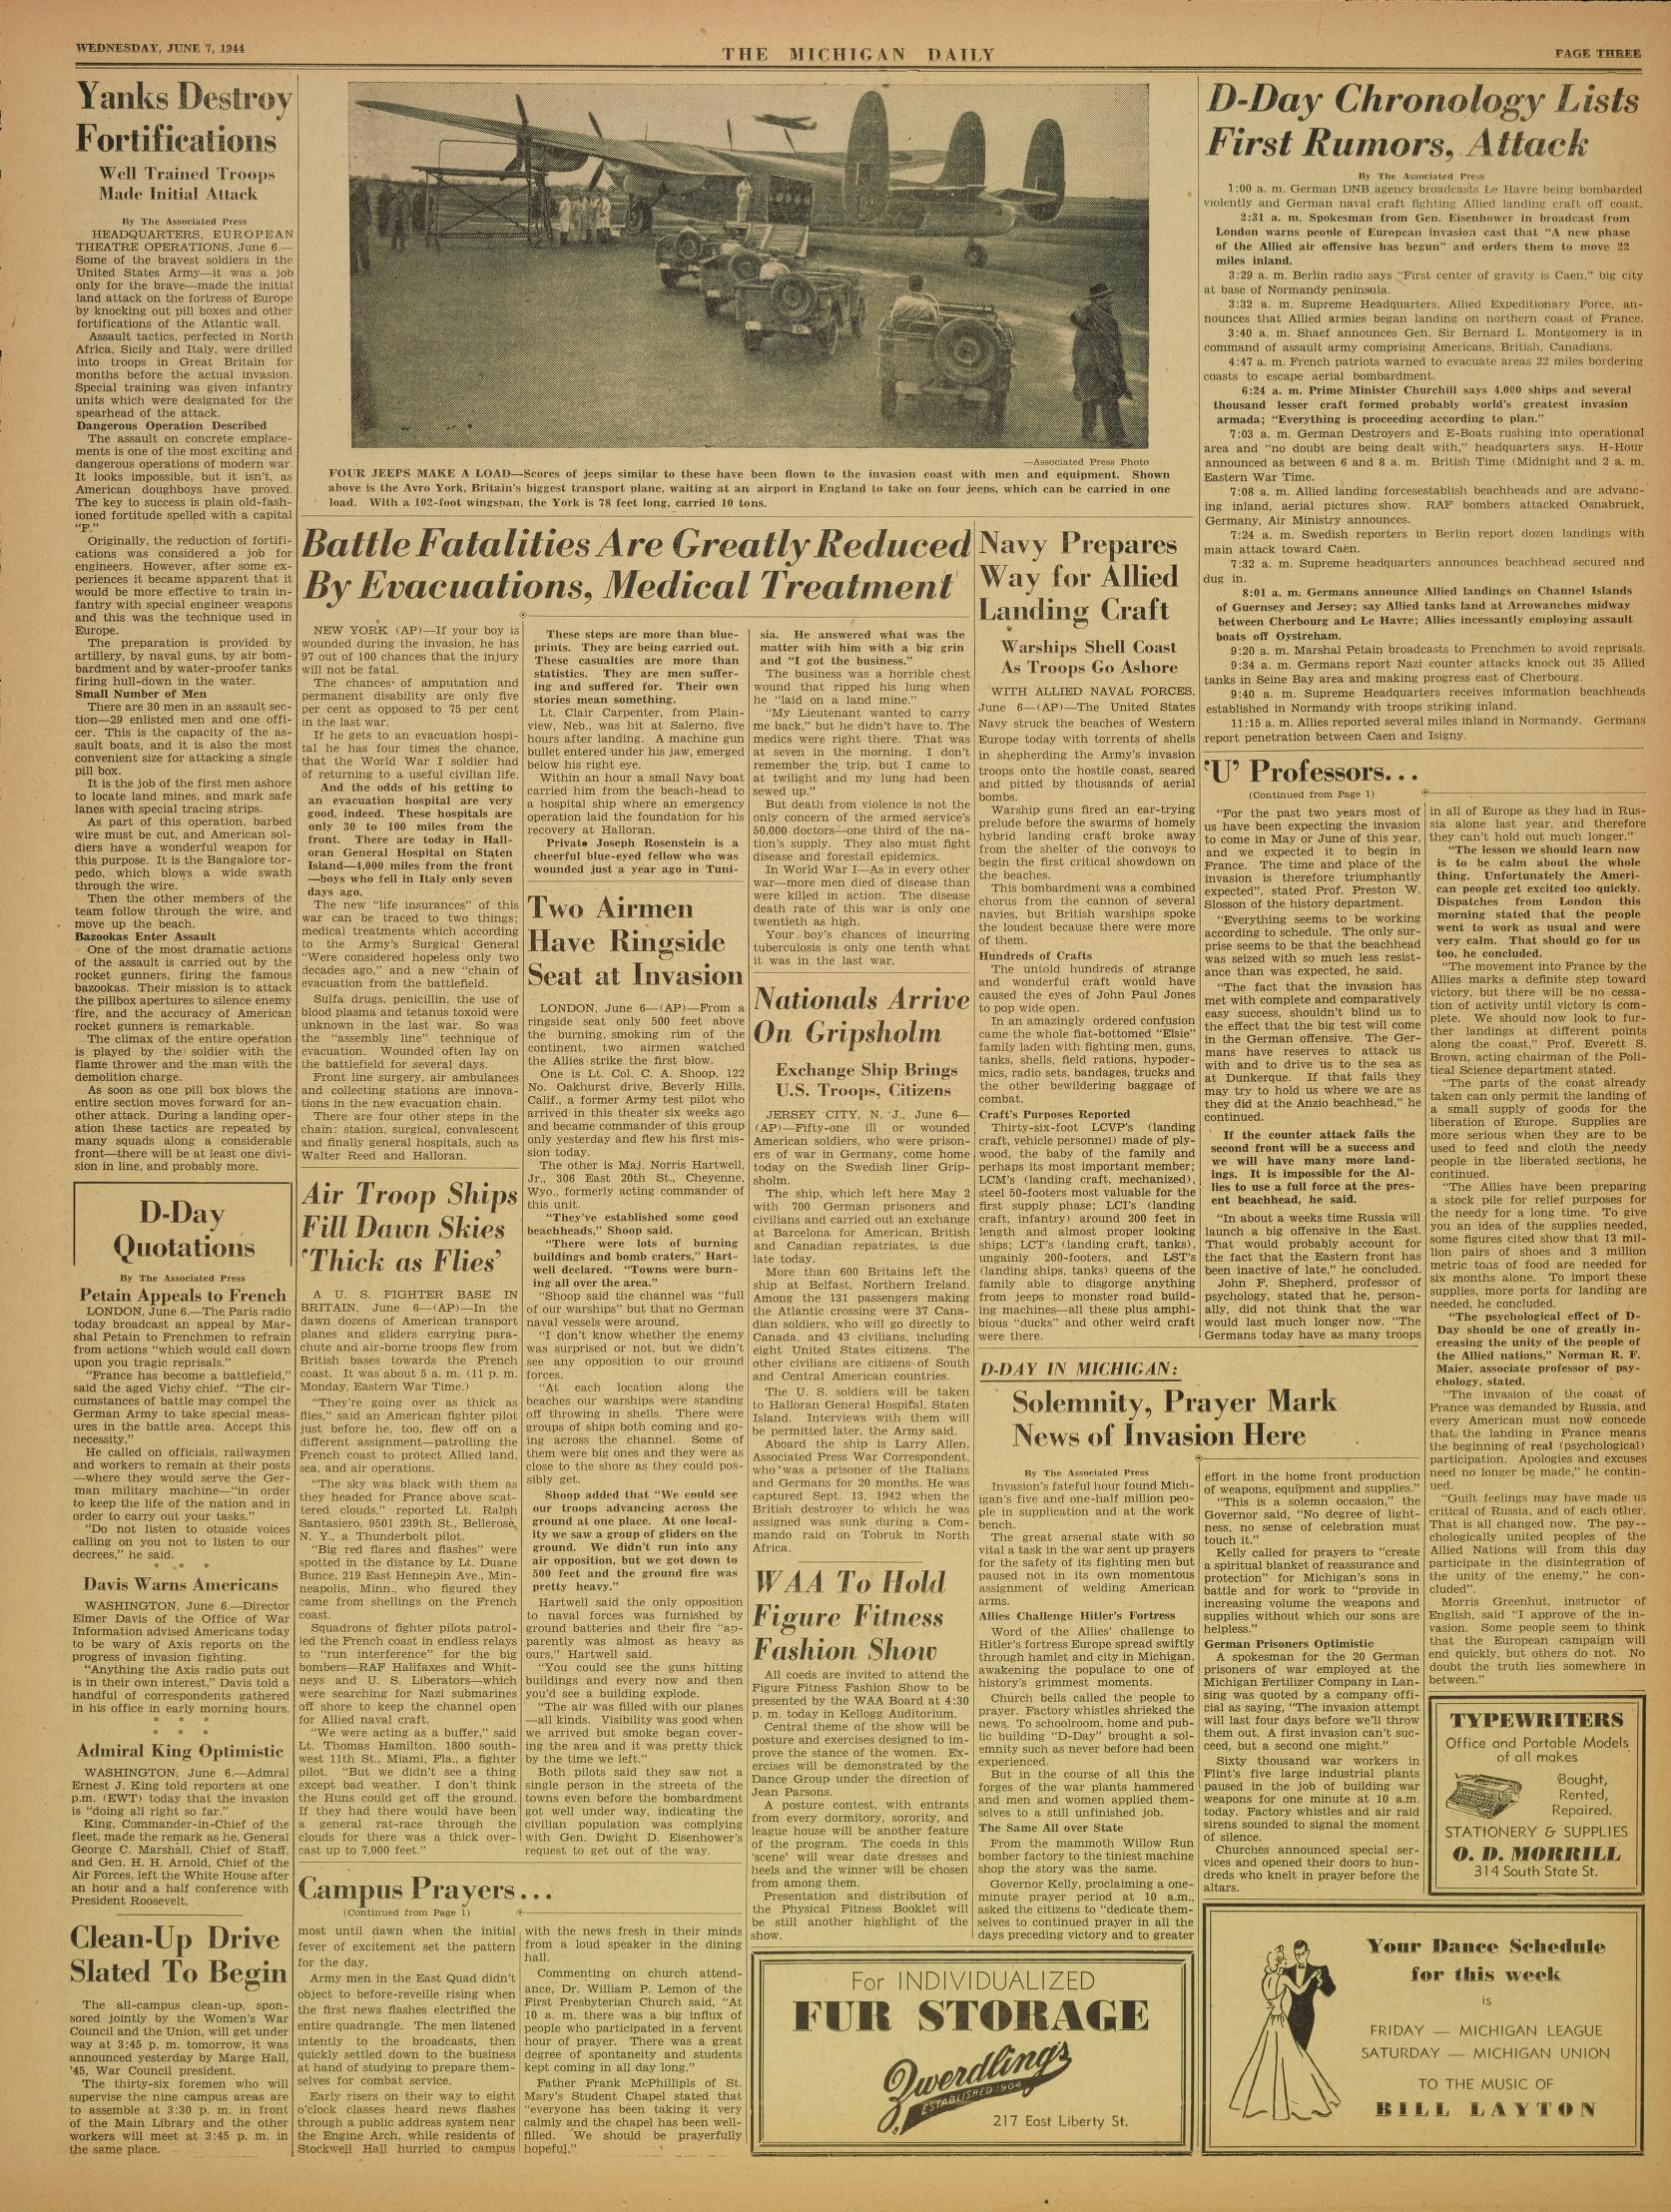 Michigan Daily Digital Archives - June 07, 1944 (vol  54, iss  154